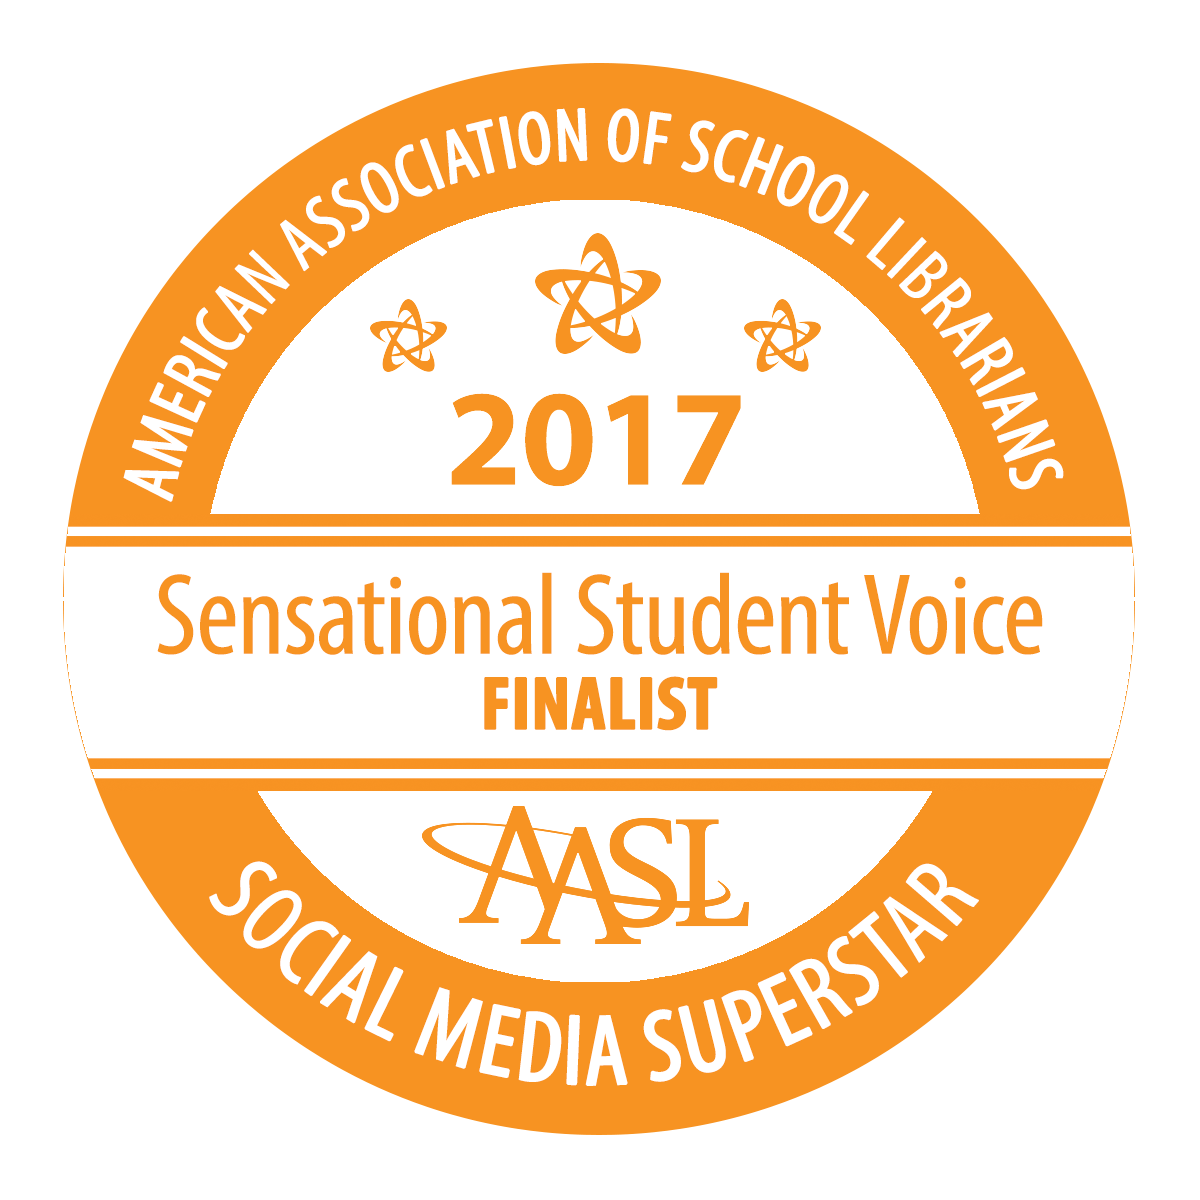 So Grateful To Be A Social Media Superstar Finalist!